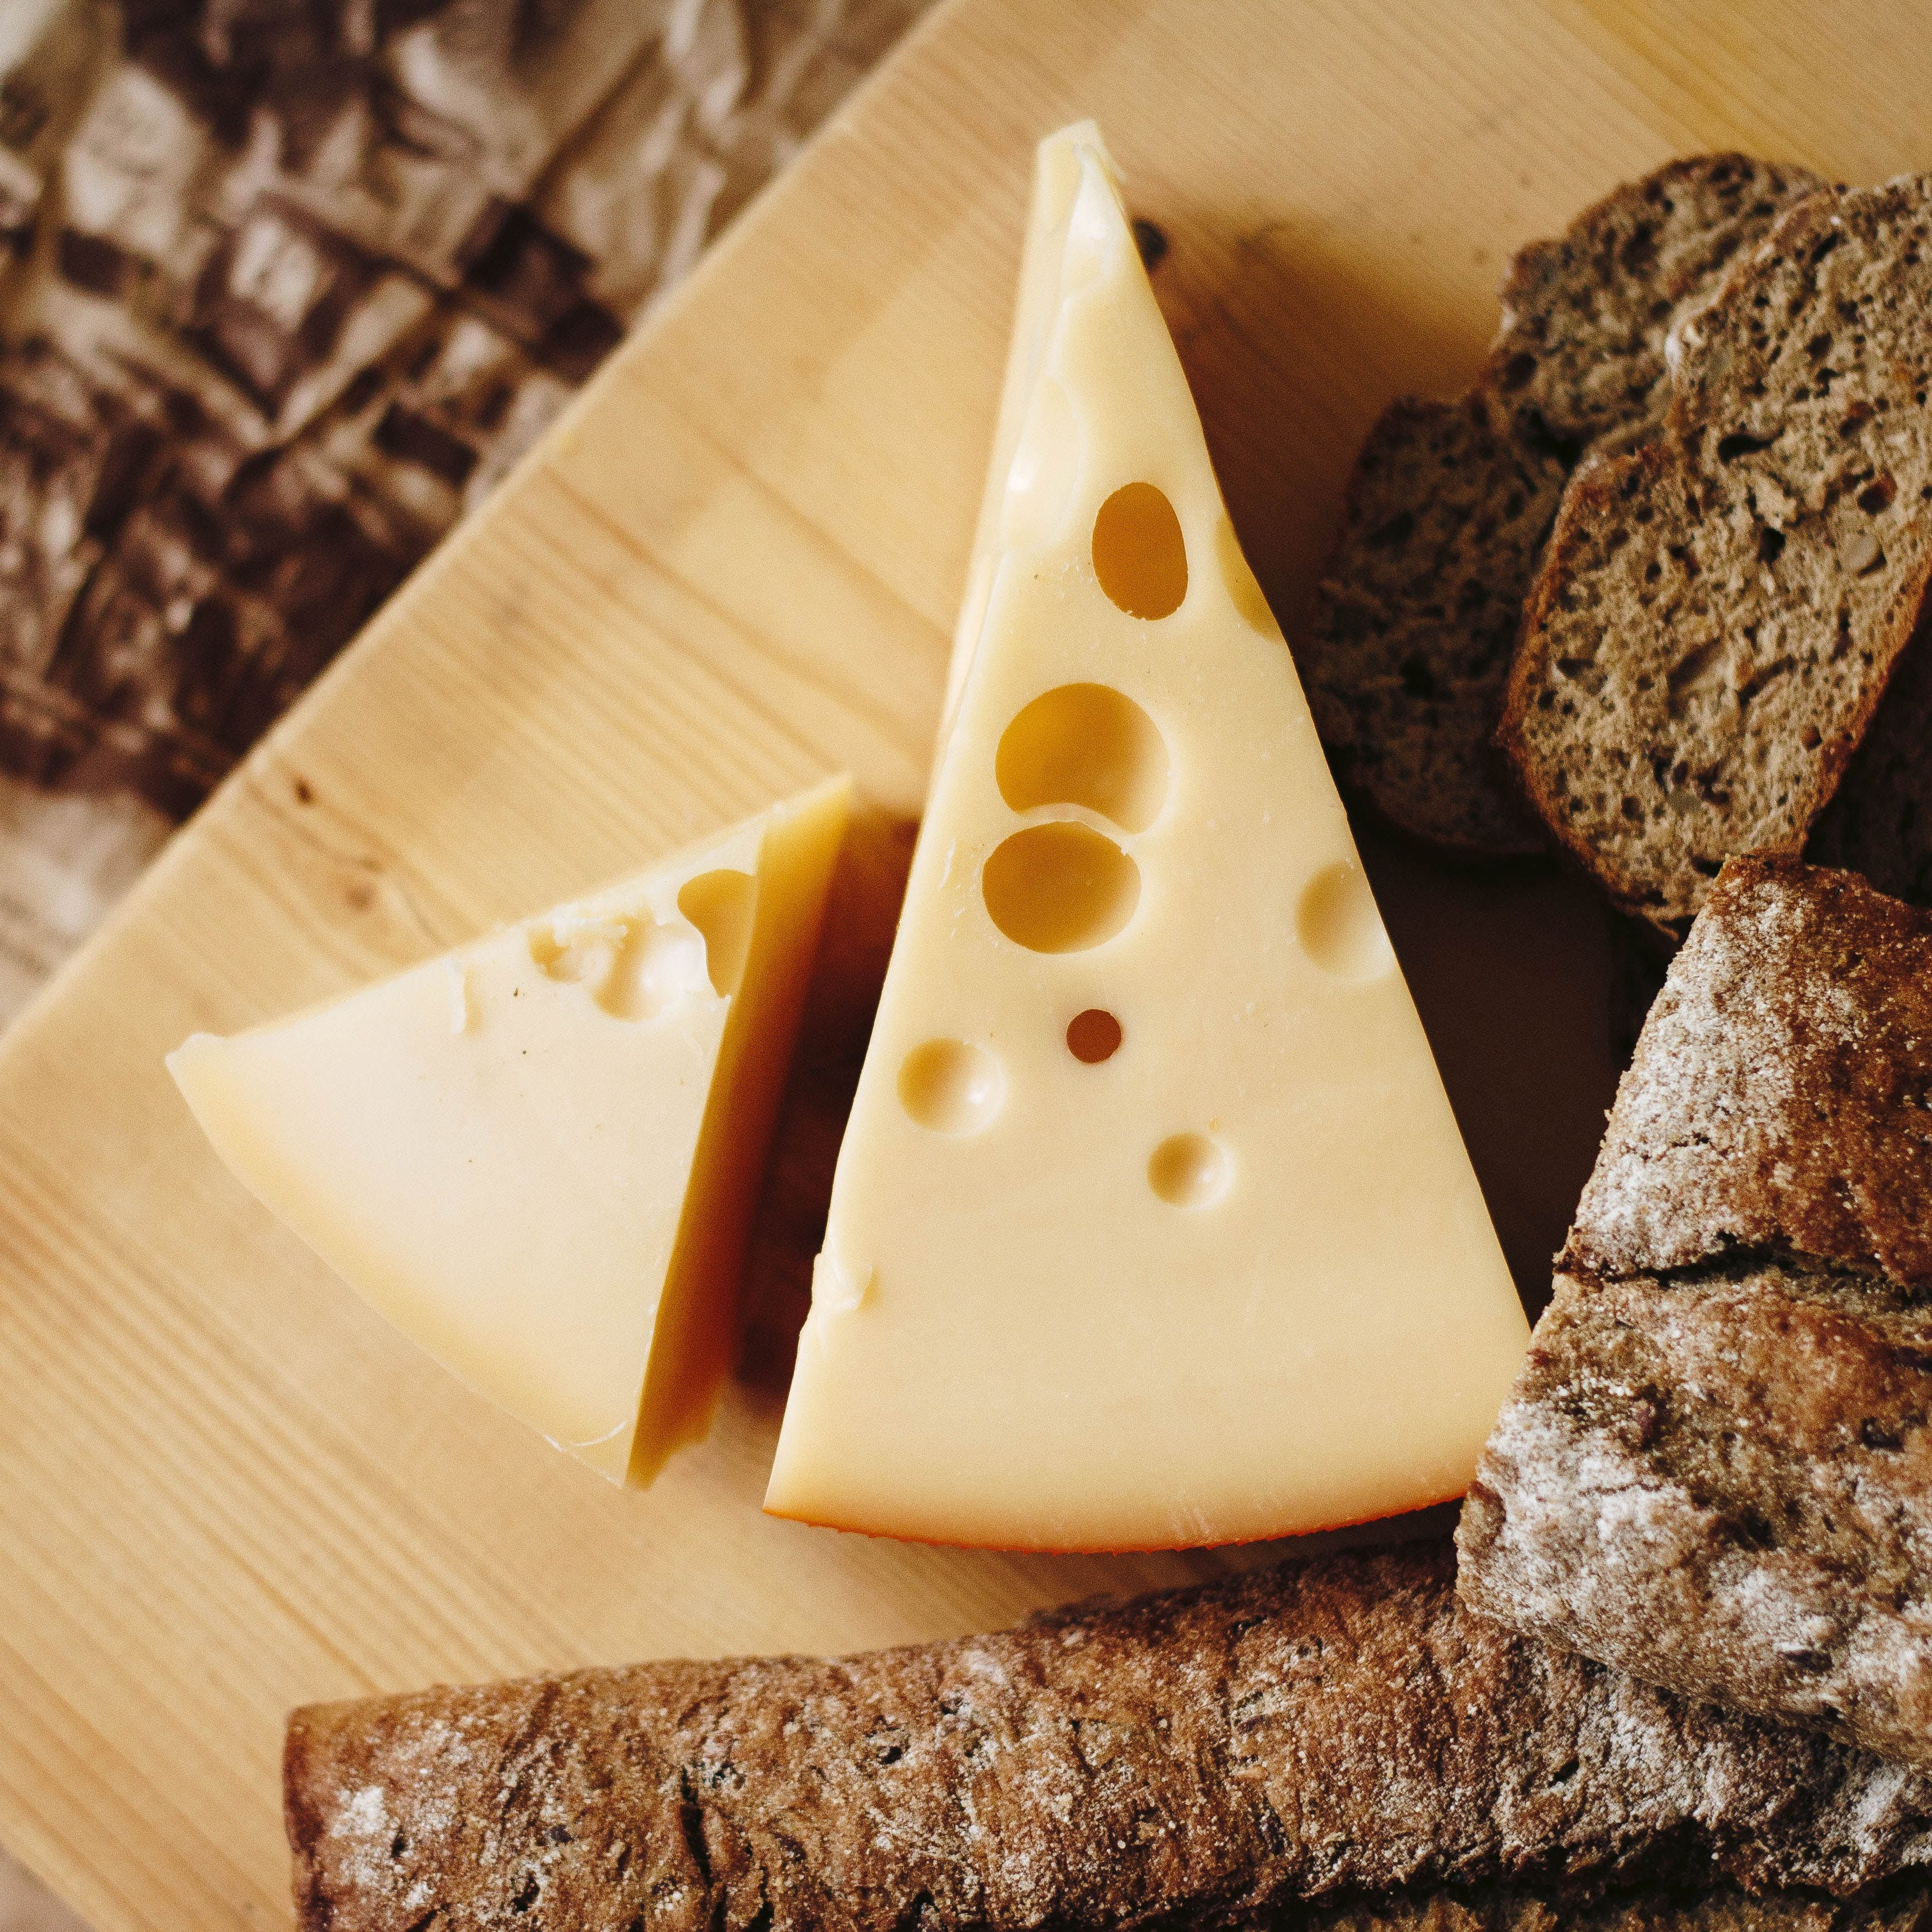 Food,Cheese,Dairy,Comfort food,Ingredient,Cuisine,Swiss cheese,Dish,Cone,Triangle